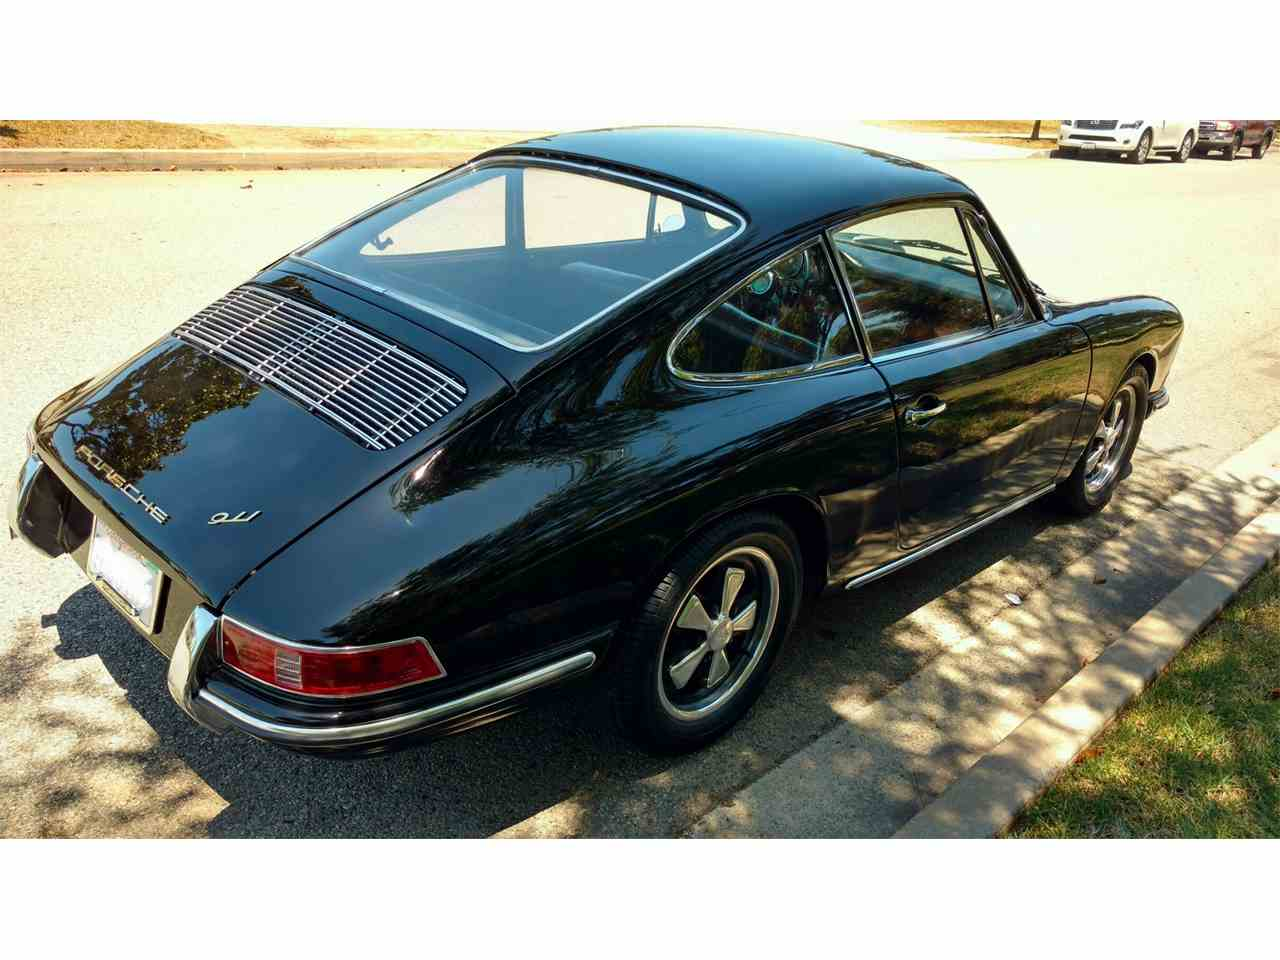 Large Picture of 1966 911 located in Hawthorne California - $185,000.00 Offered by a Private Seller - K1JK